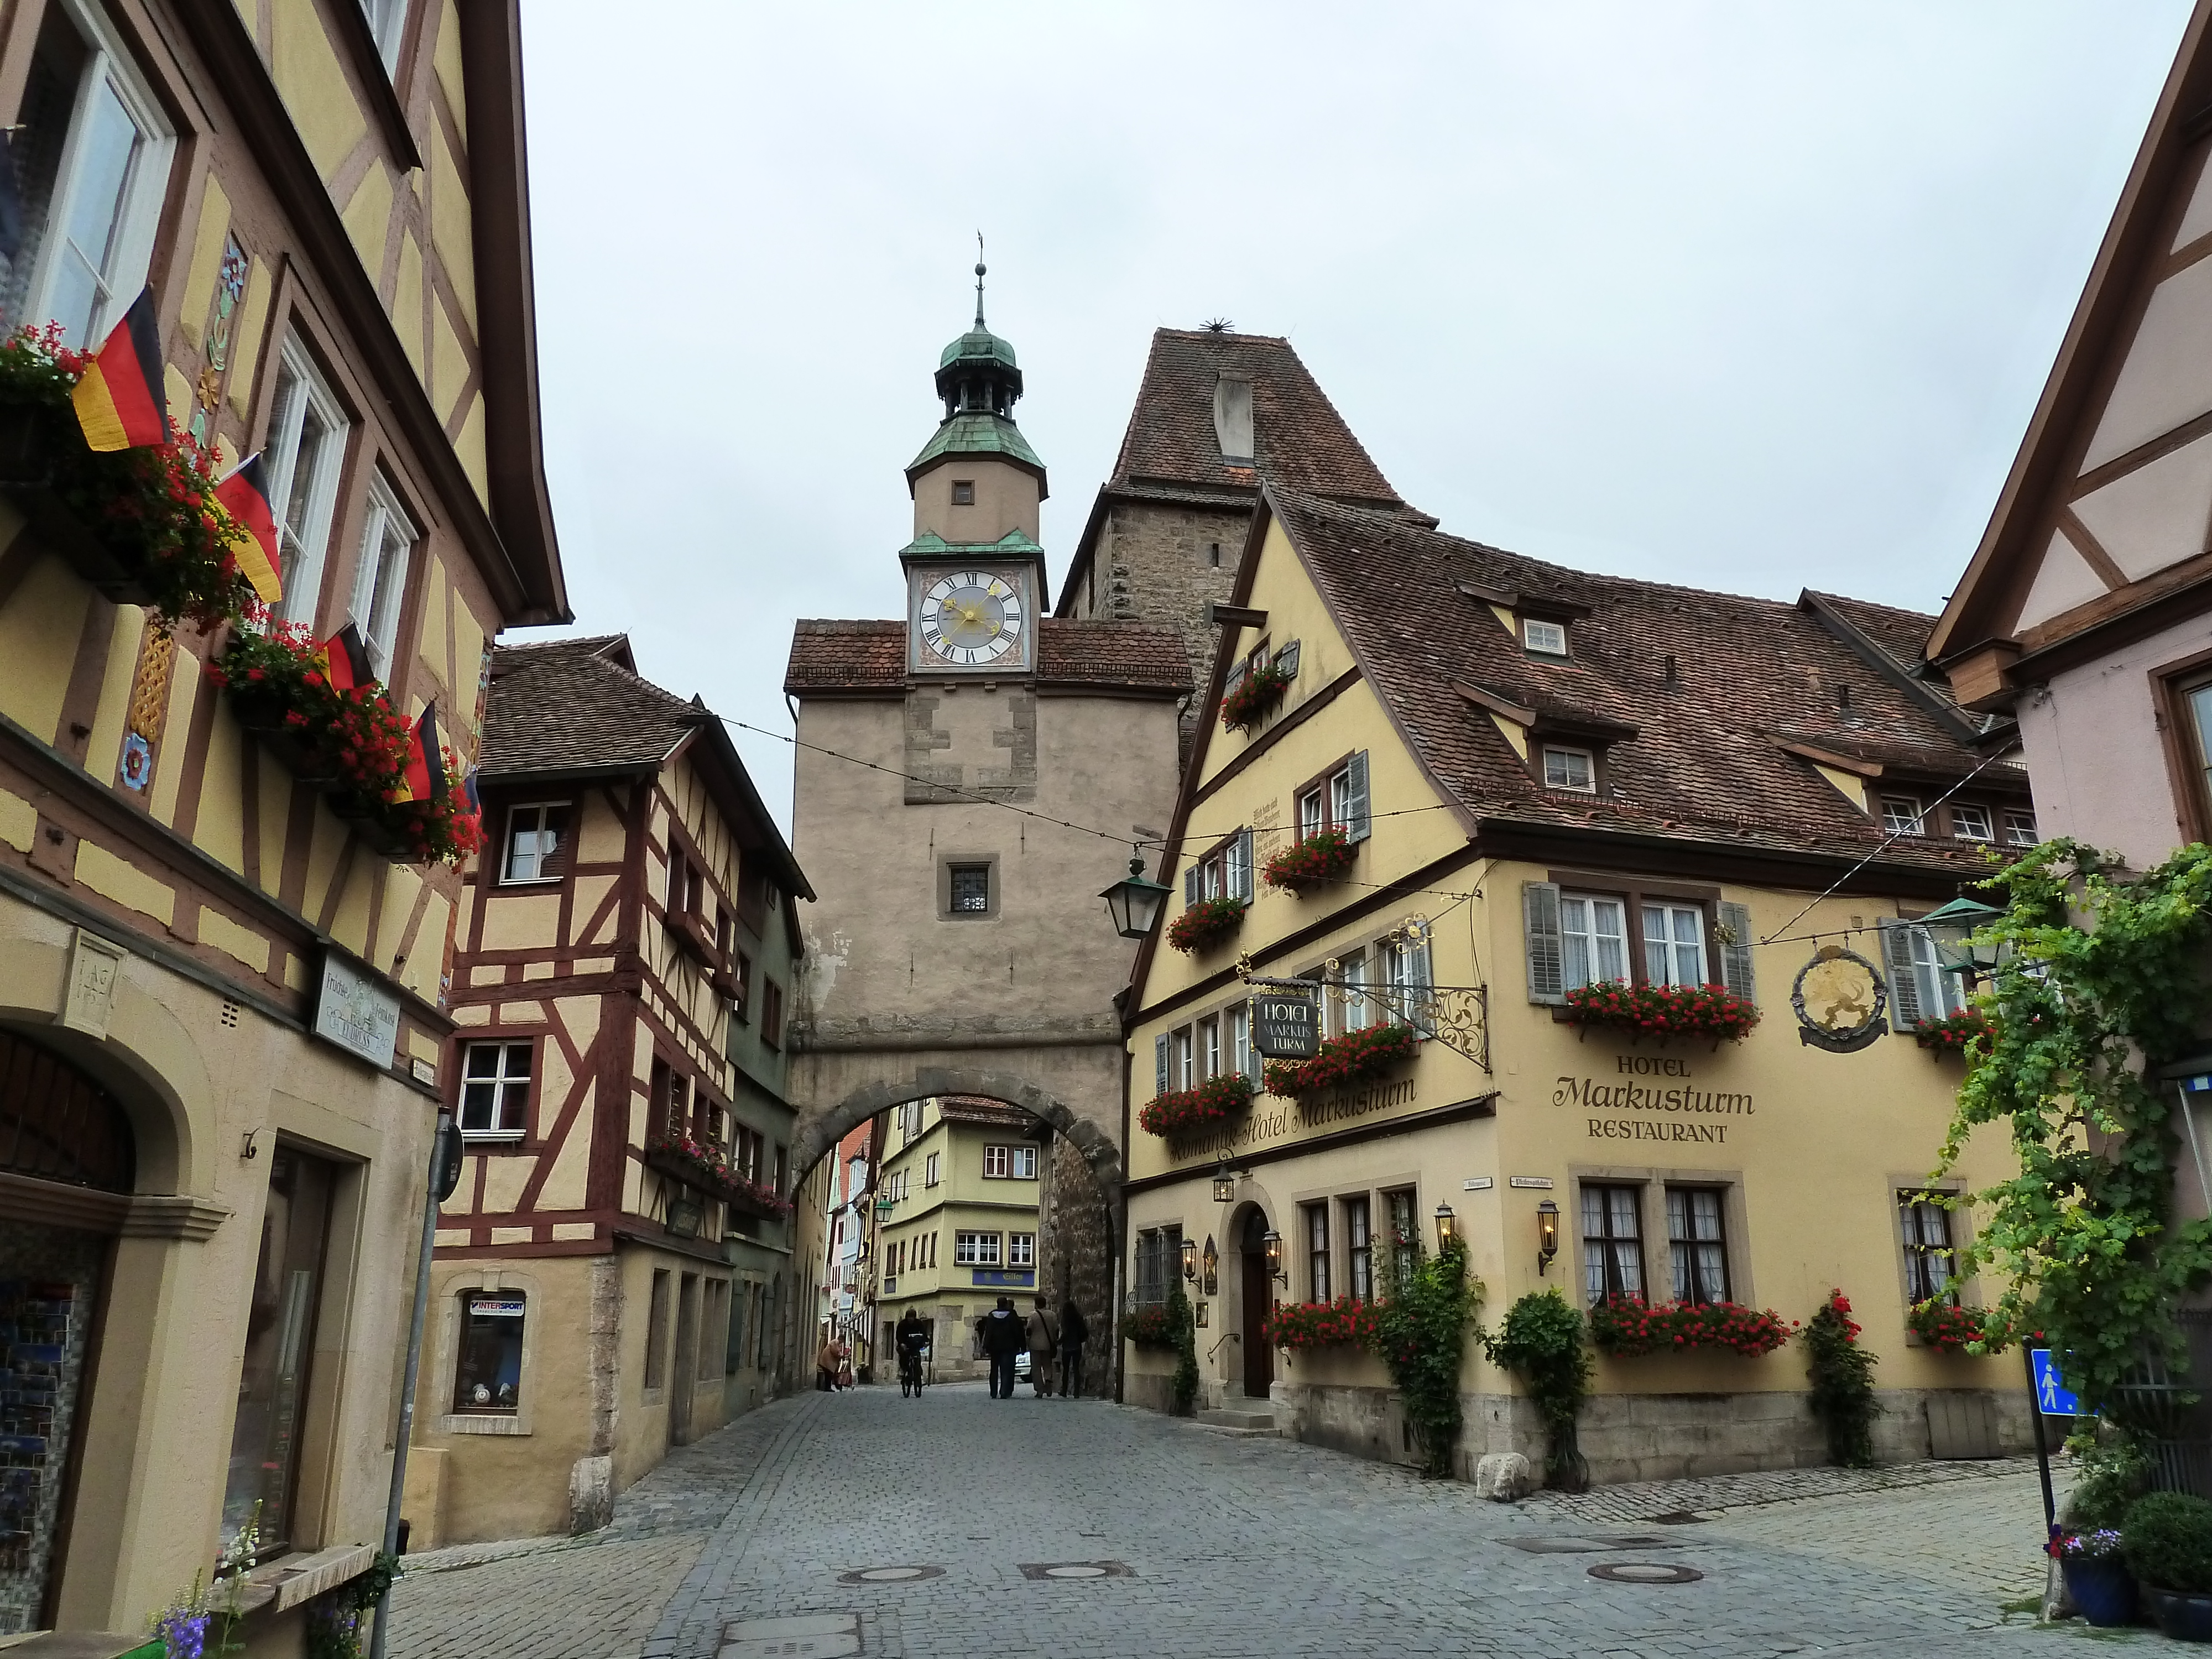 The Roeder Tor, one of the many towers scattered throughout Rothenburg